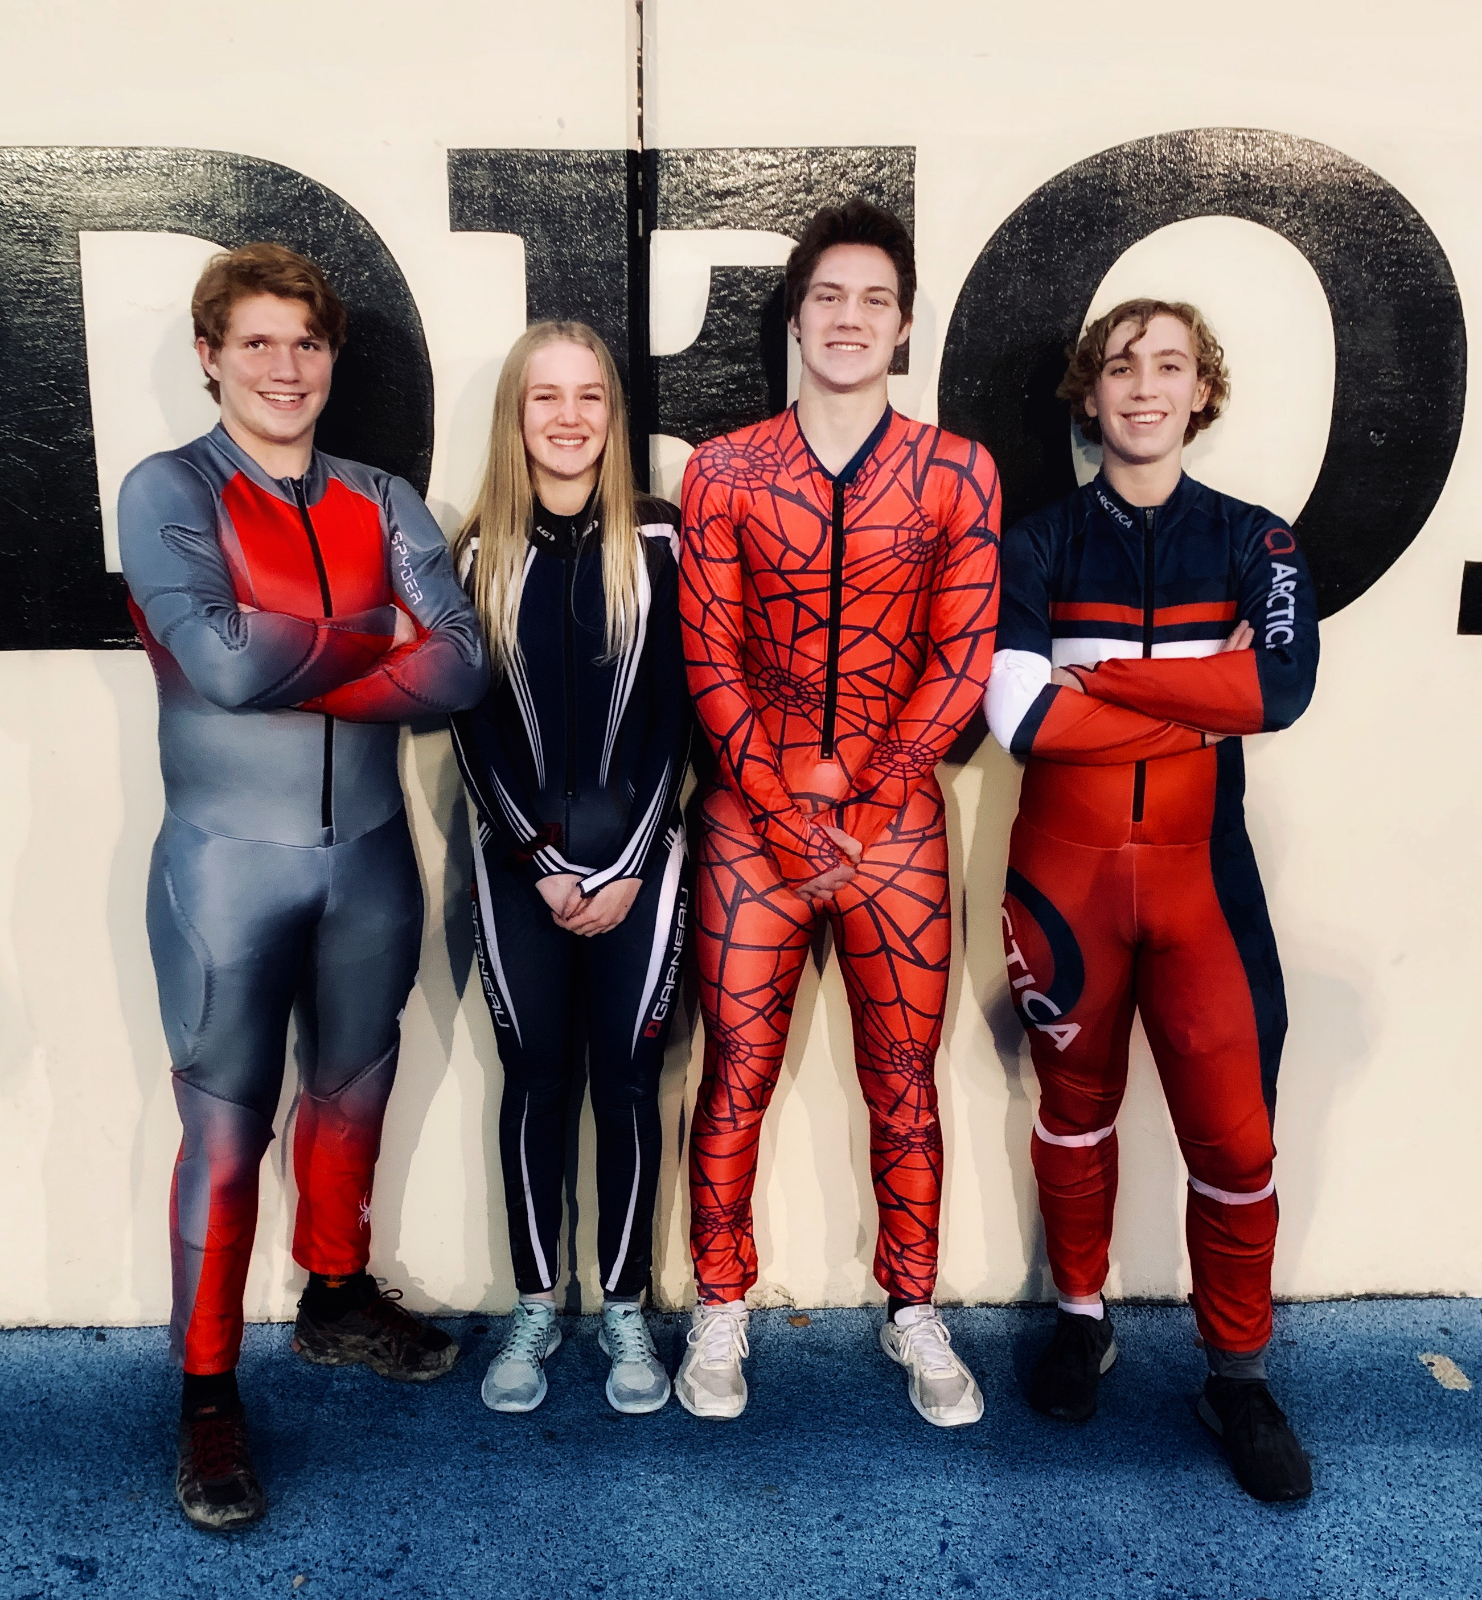 Ski Team Results – This Past Weekend